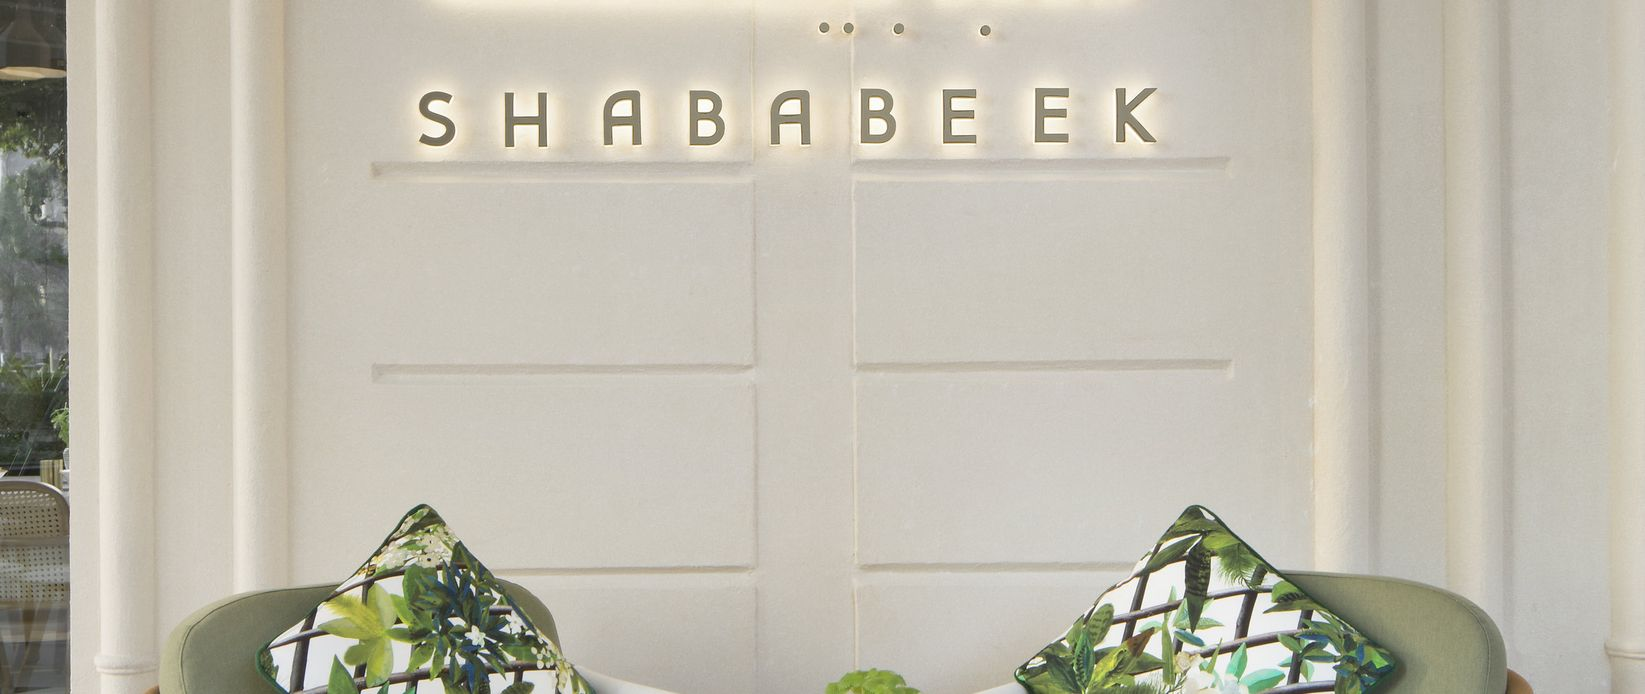 shababeek outdoors